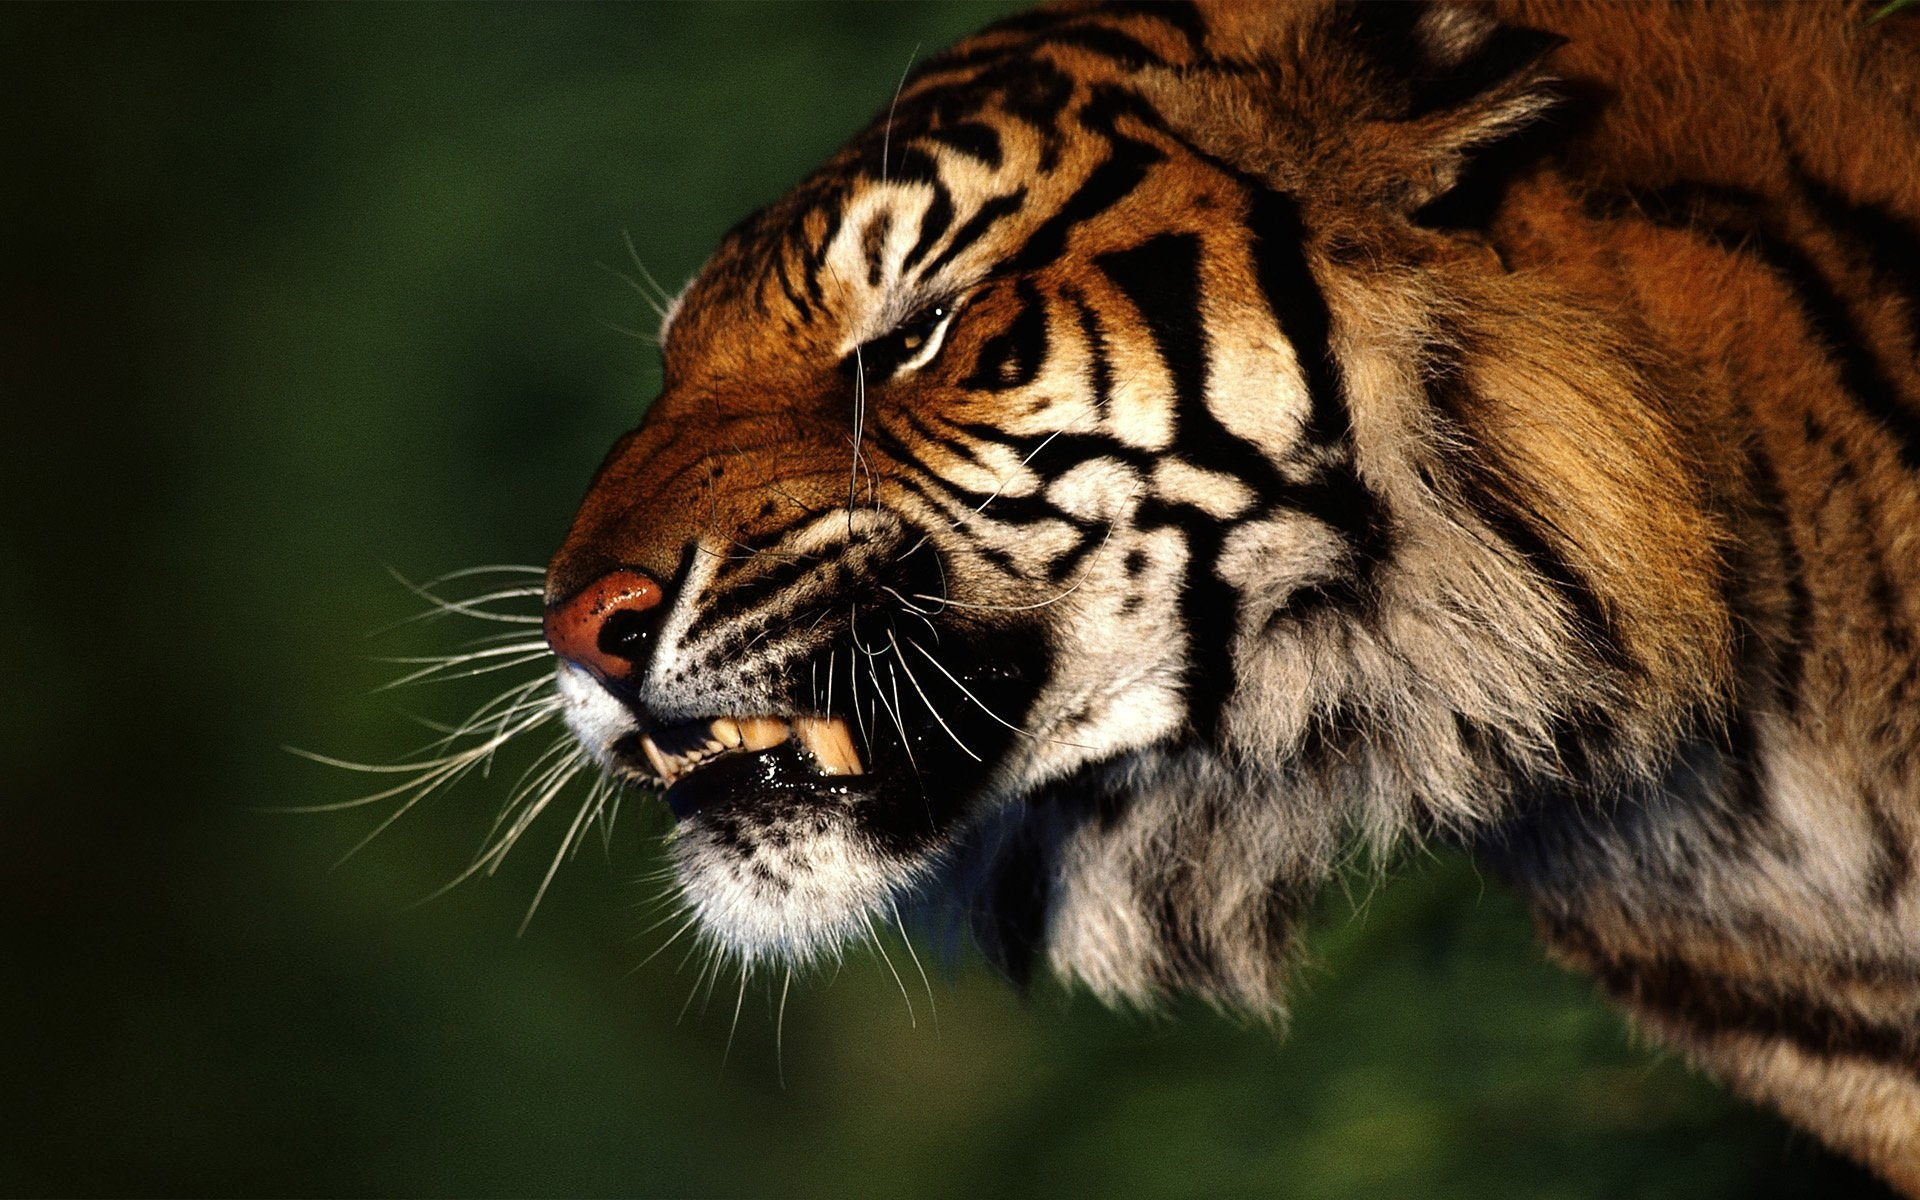 44463 download wallpaper Animals, Tigers screensavers and pictures for free